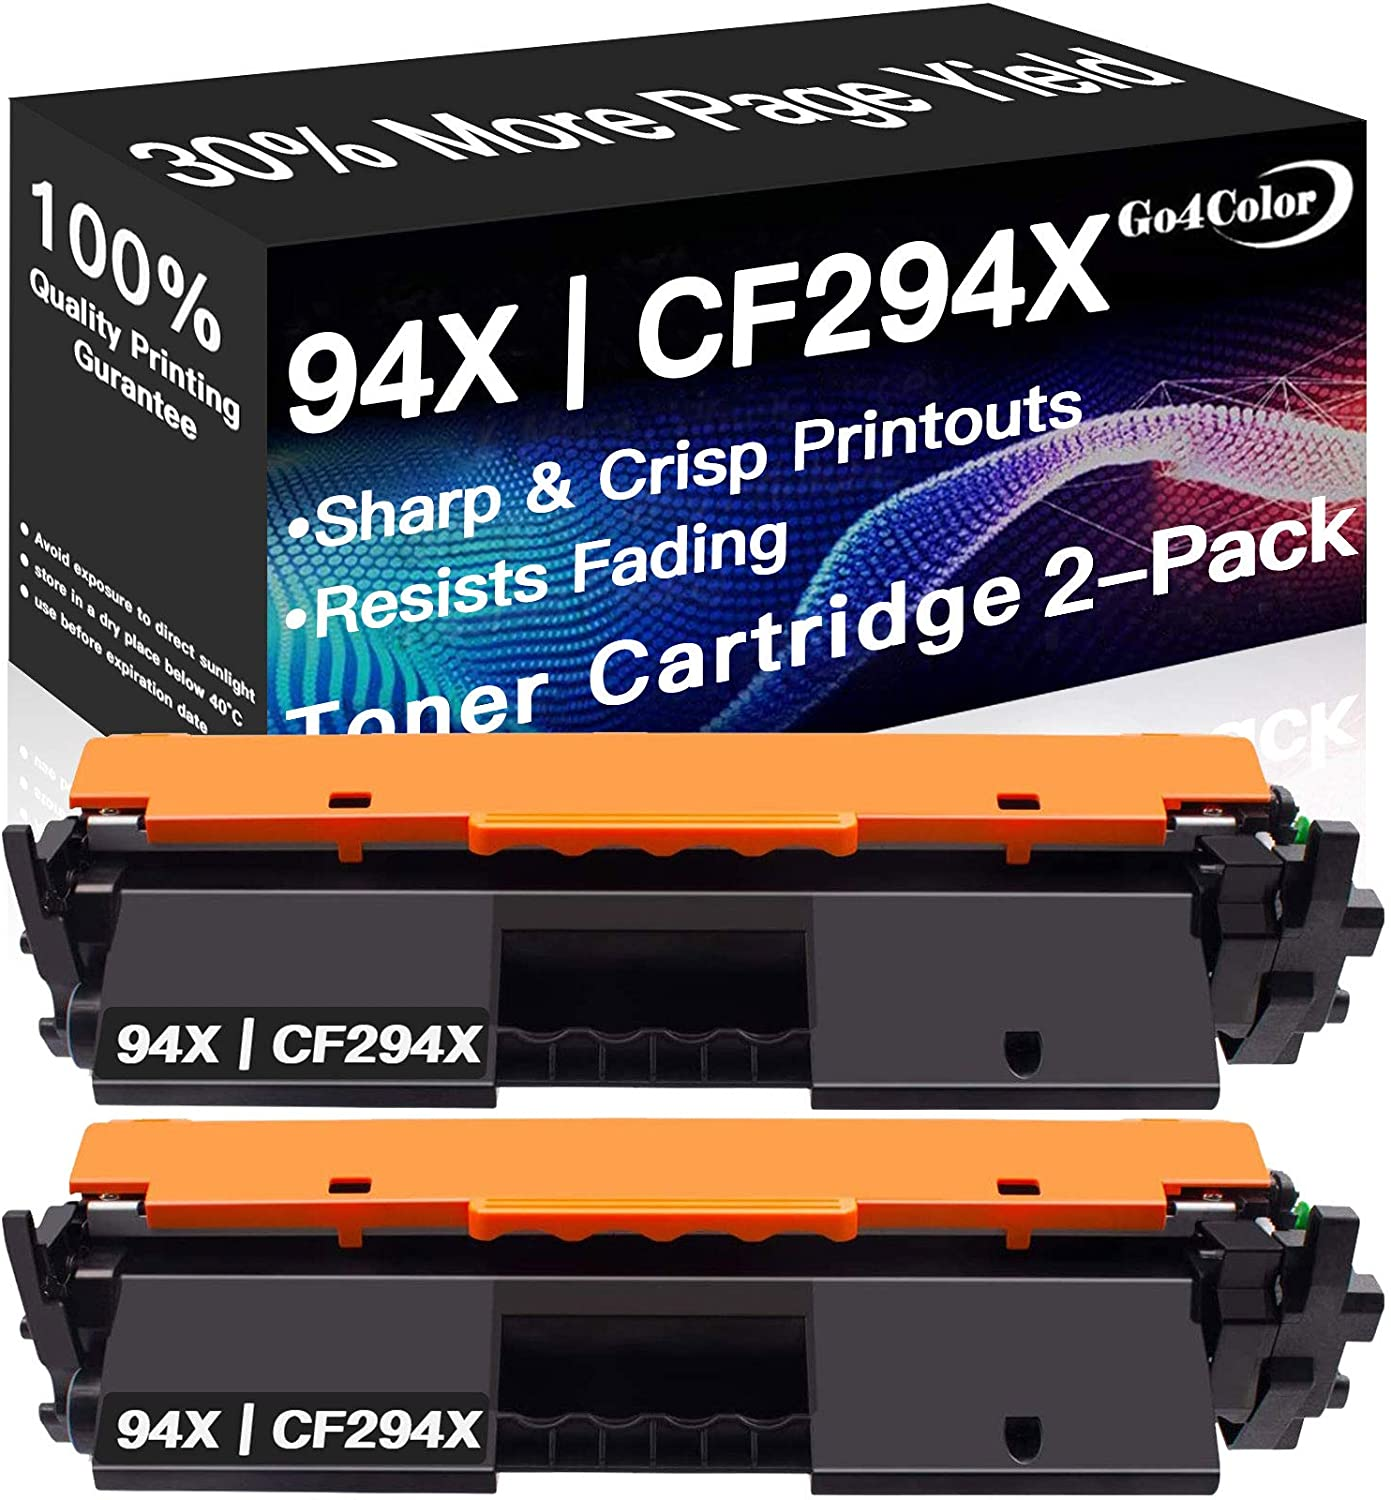 2-Pack Compatible High Yield CF294X 94X Printer Toner Cartridge 94A CF294A Used for HP Laserjet Pro M148 M148dw M148fdw M149 M149dw M149fdw M118dw M118 (Black), Sold by Go4color